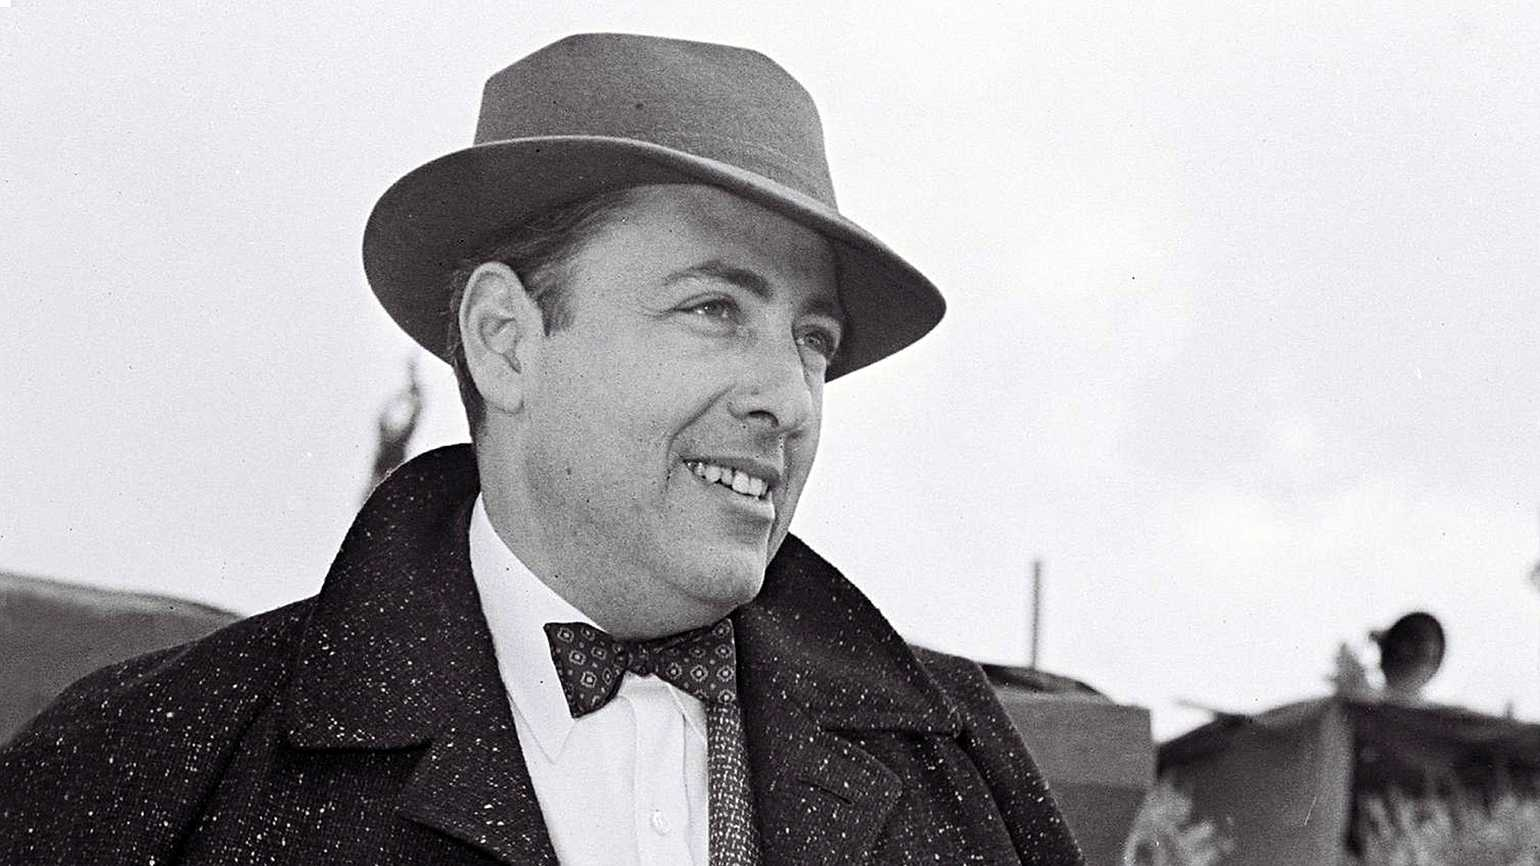 Pulitzer Prize-winning author and playwright Herman Wouk